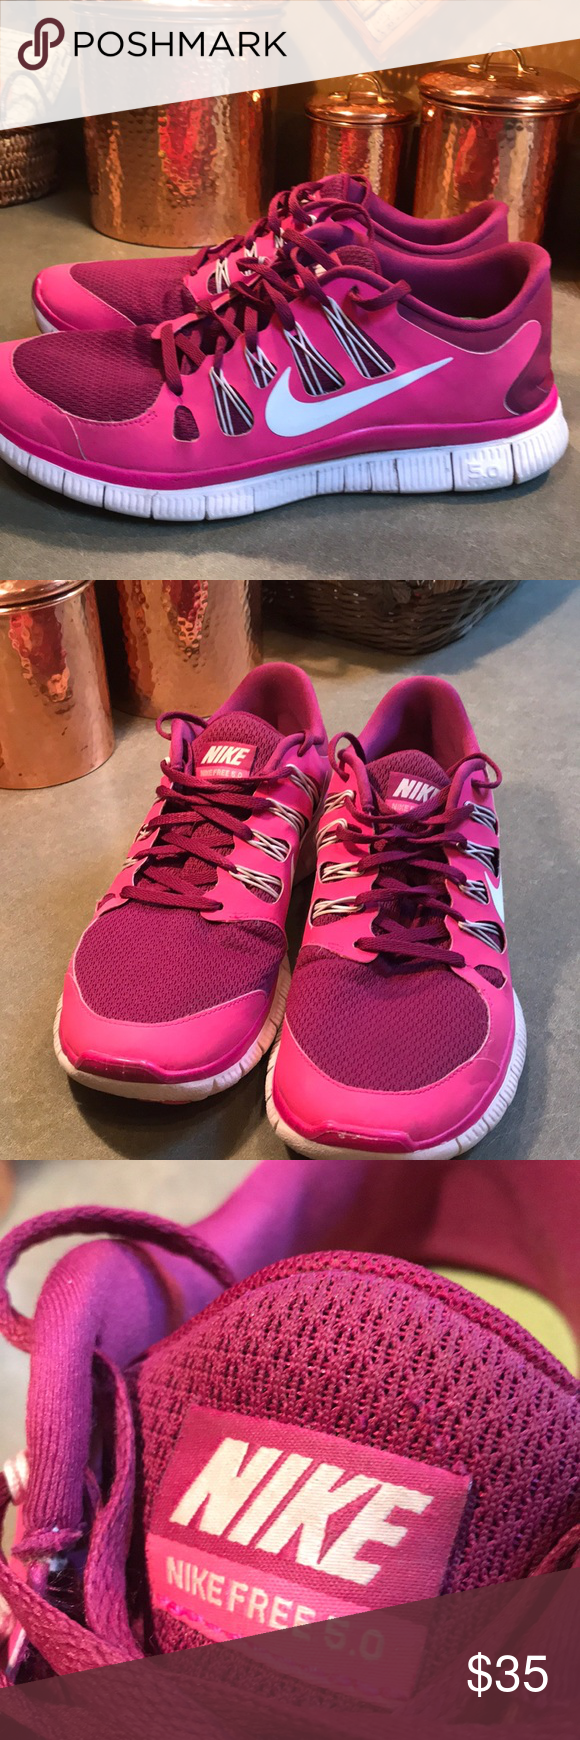 757f305f2cfa Nike Free 5.0 Women s Running Shoe. Size 11 Nike Free 5.0 Raspberry Pink  Women s Running Shoes. Size 11. Shoes are in excellent used condition!